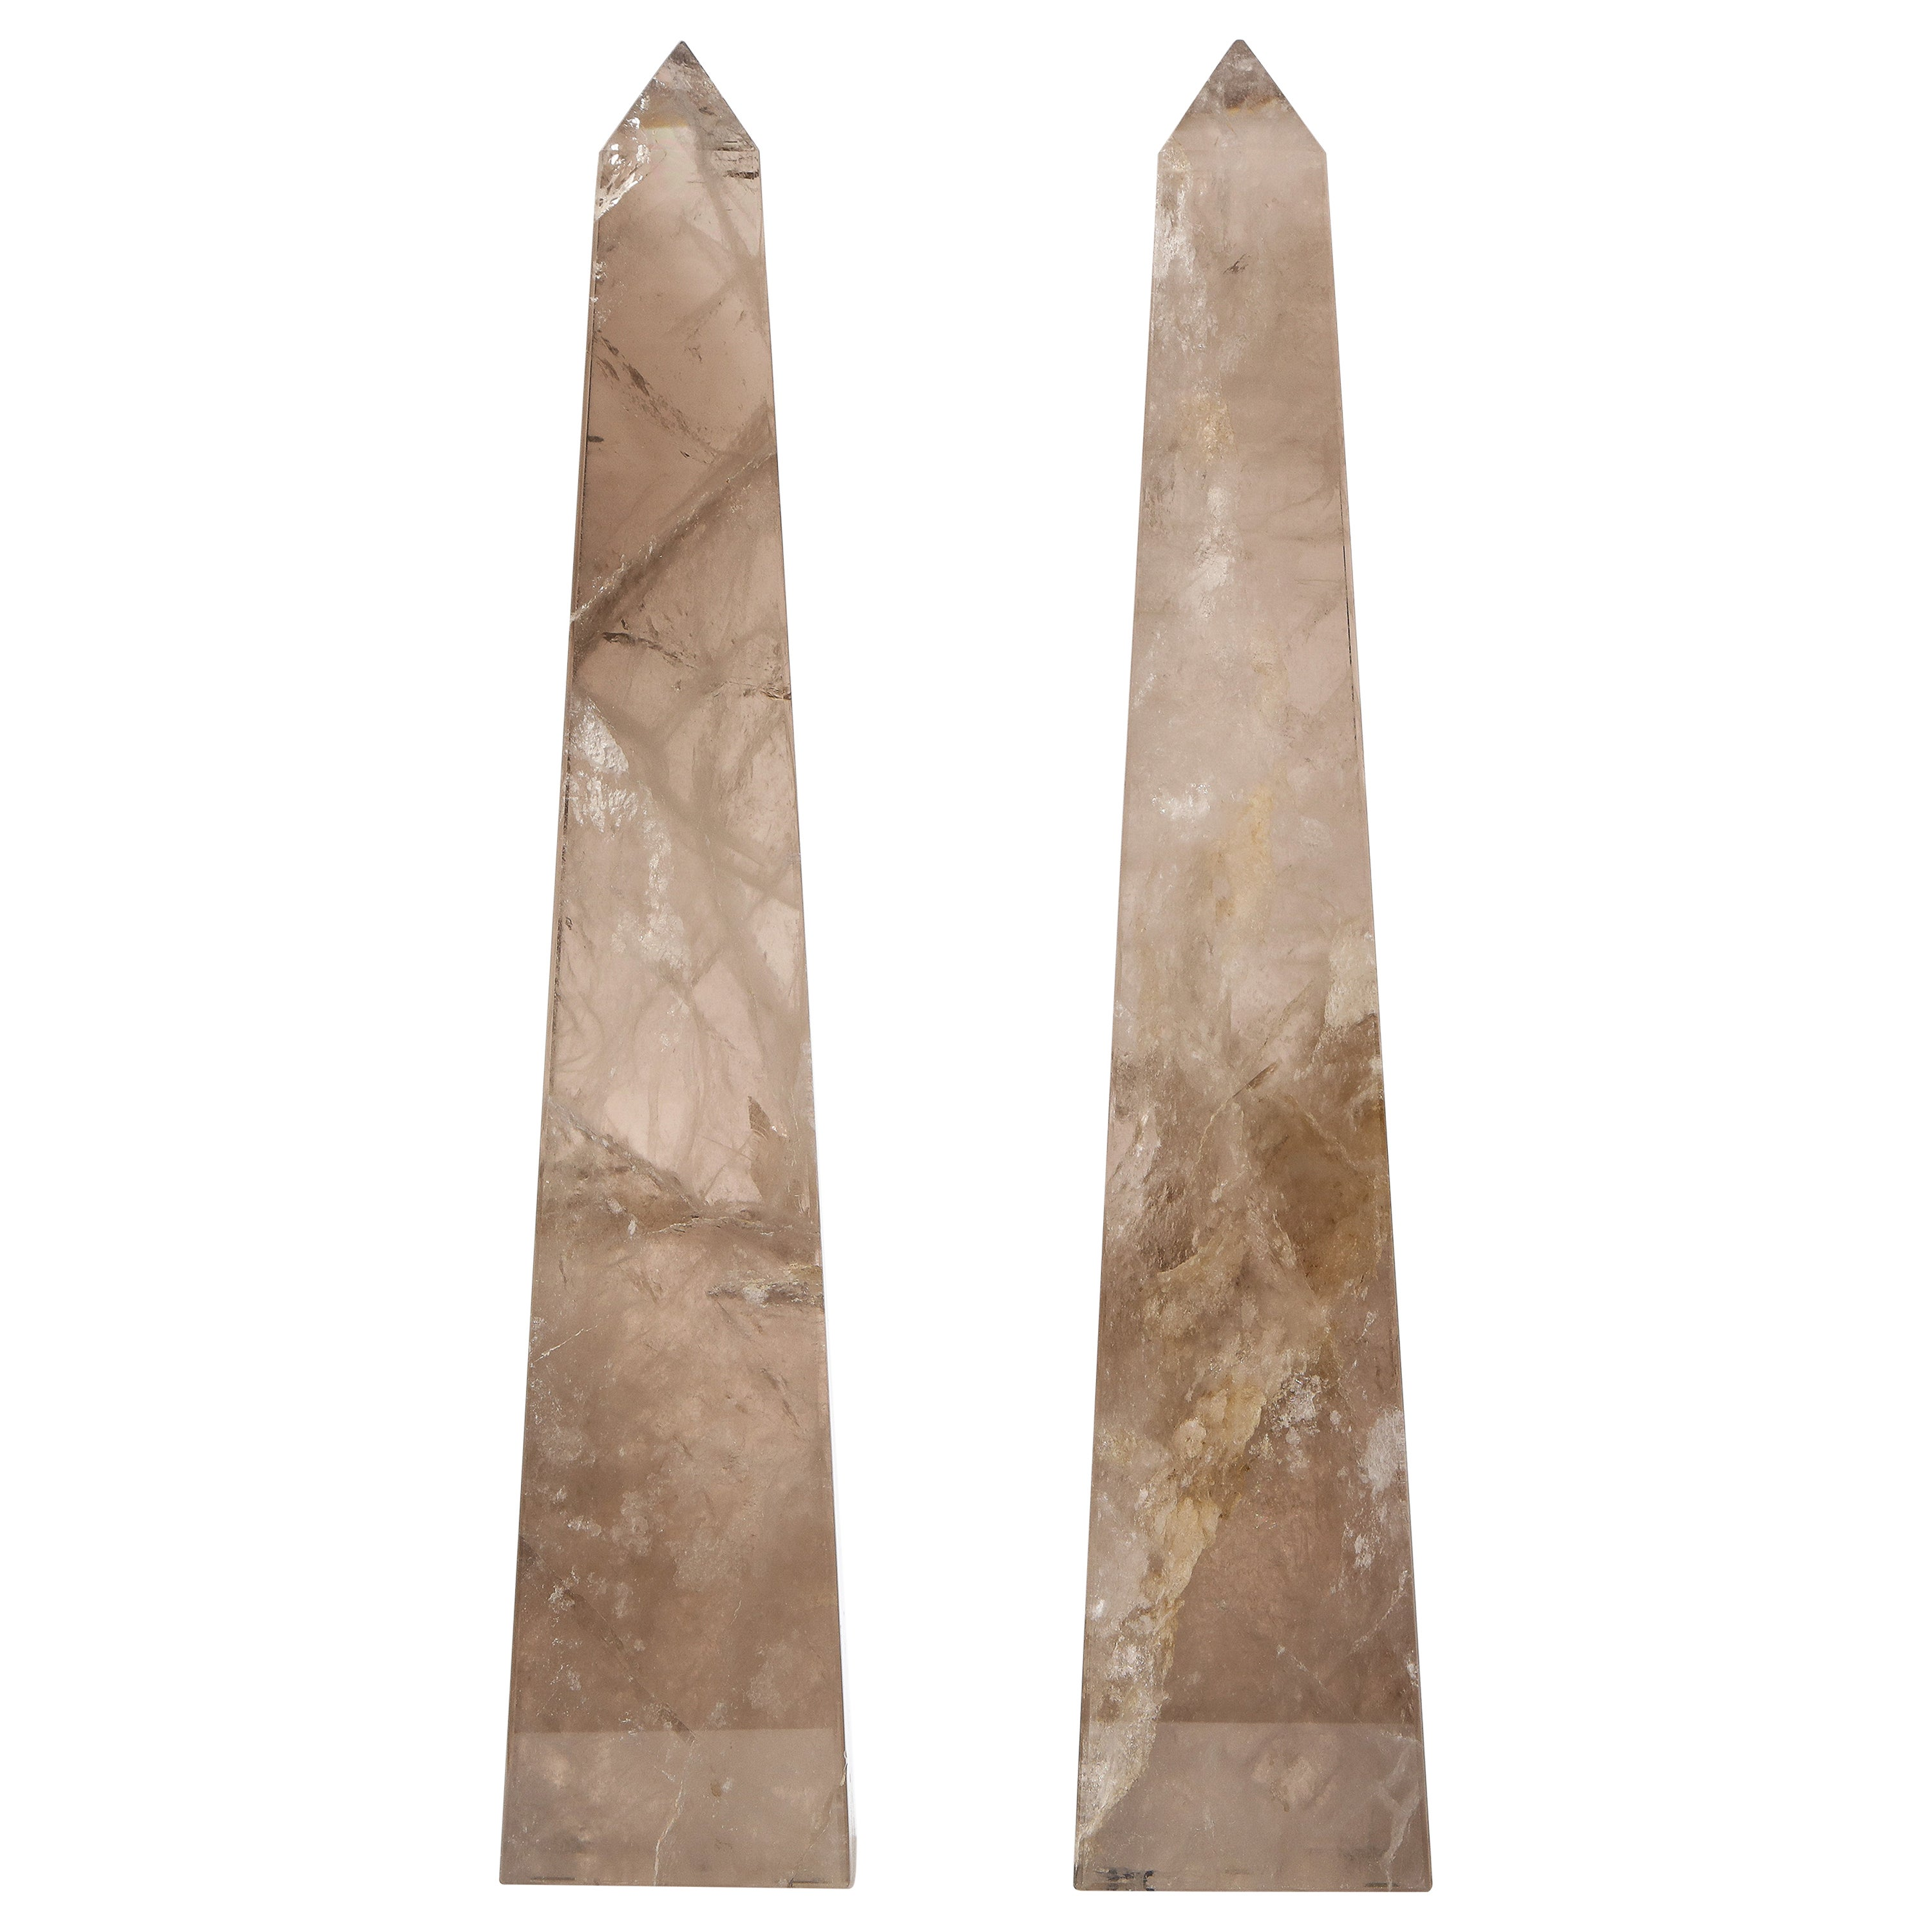 Pair of Smokey Rock Crystal Quartz Hand Carved and Hand-Polished Obelisks